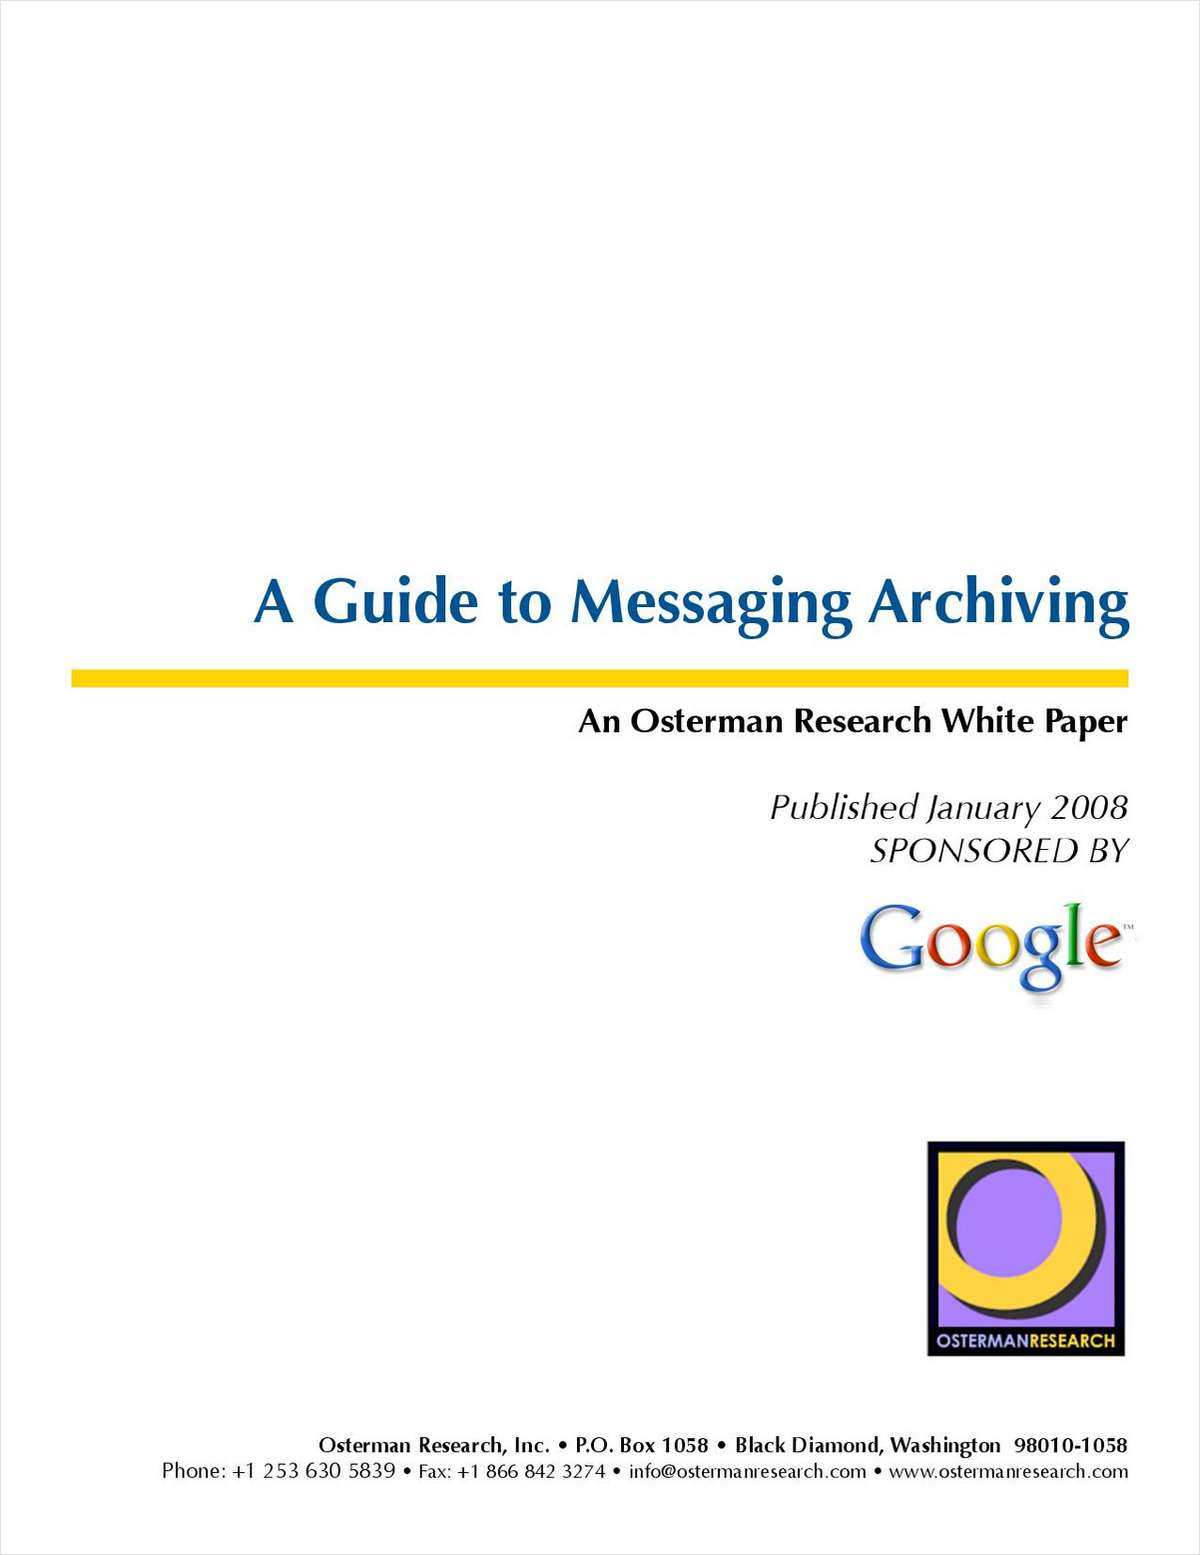 A Guide to Messaging Archiving